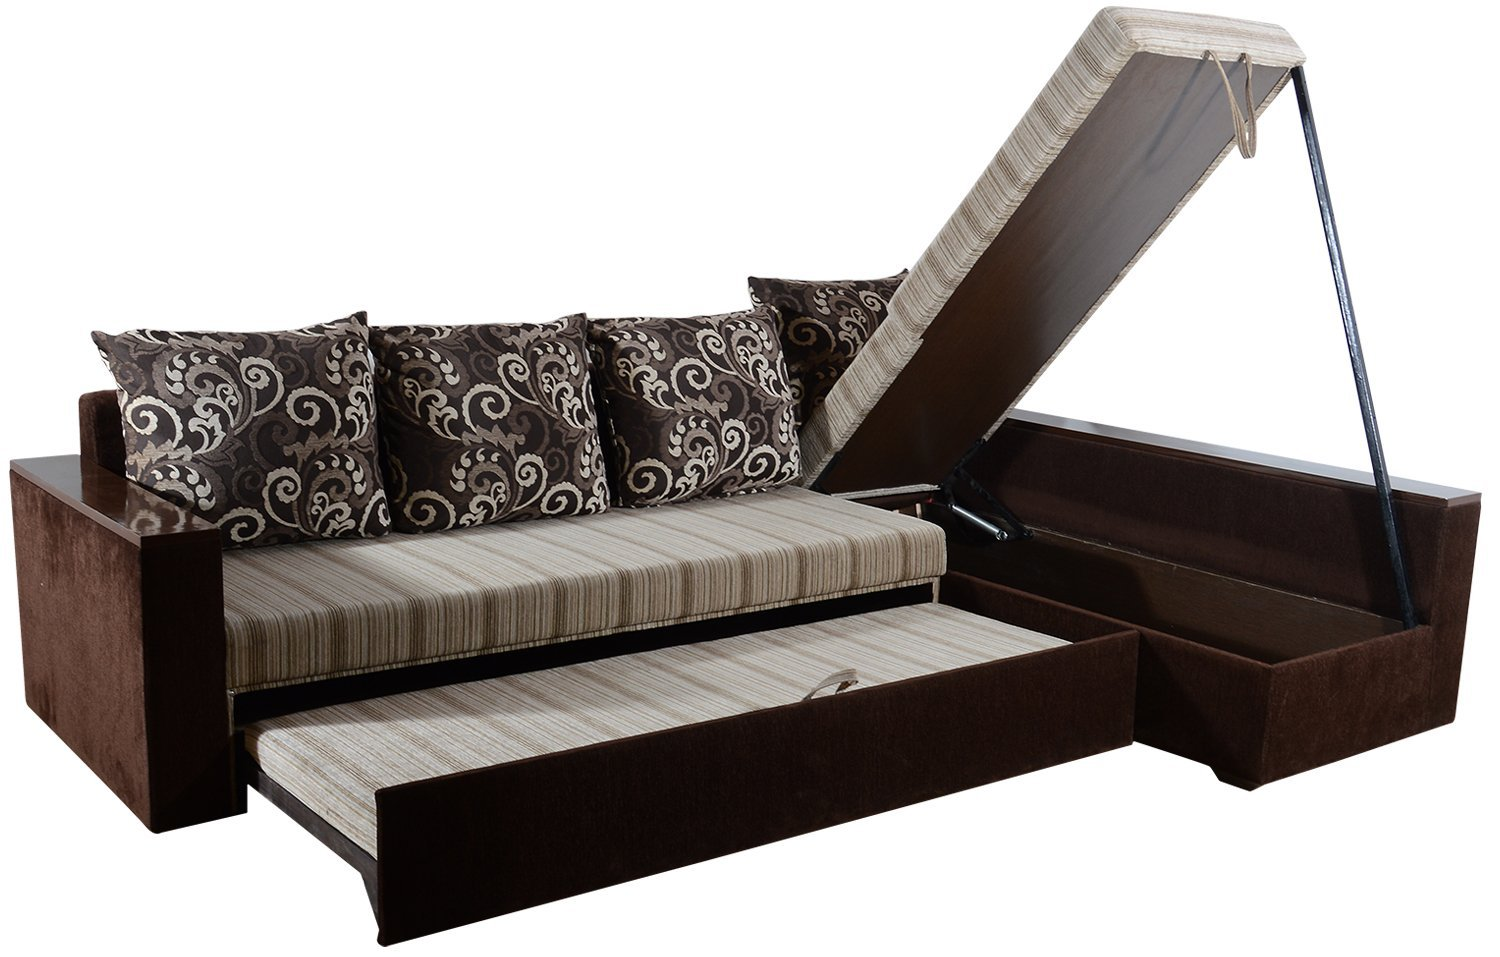 L Shape Sofa Set Price In Chennai Five Seater Sofa Bongo Modular Five Seater Sofa In